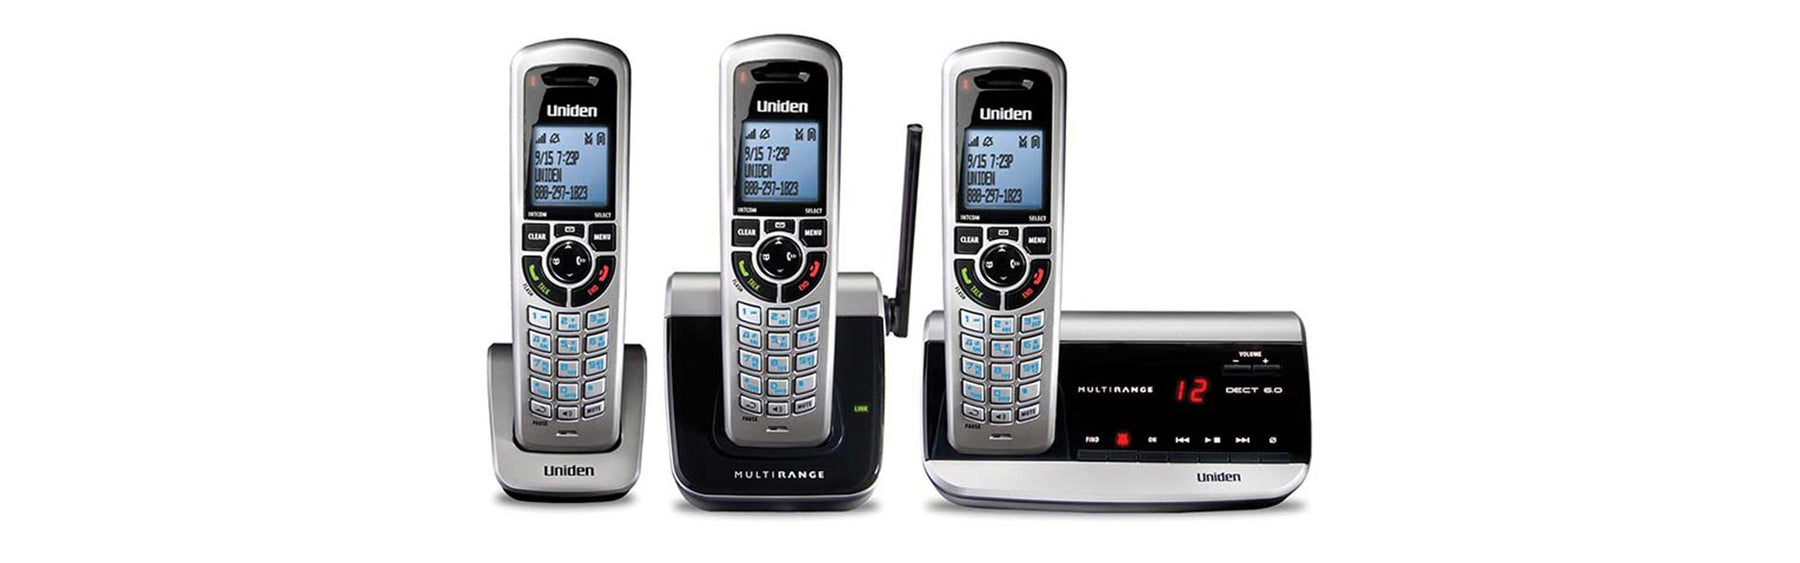 Digital Answering System with Handset Access